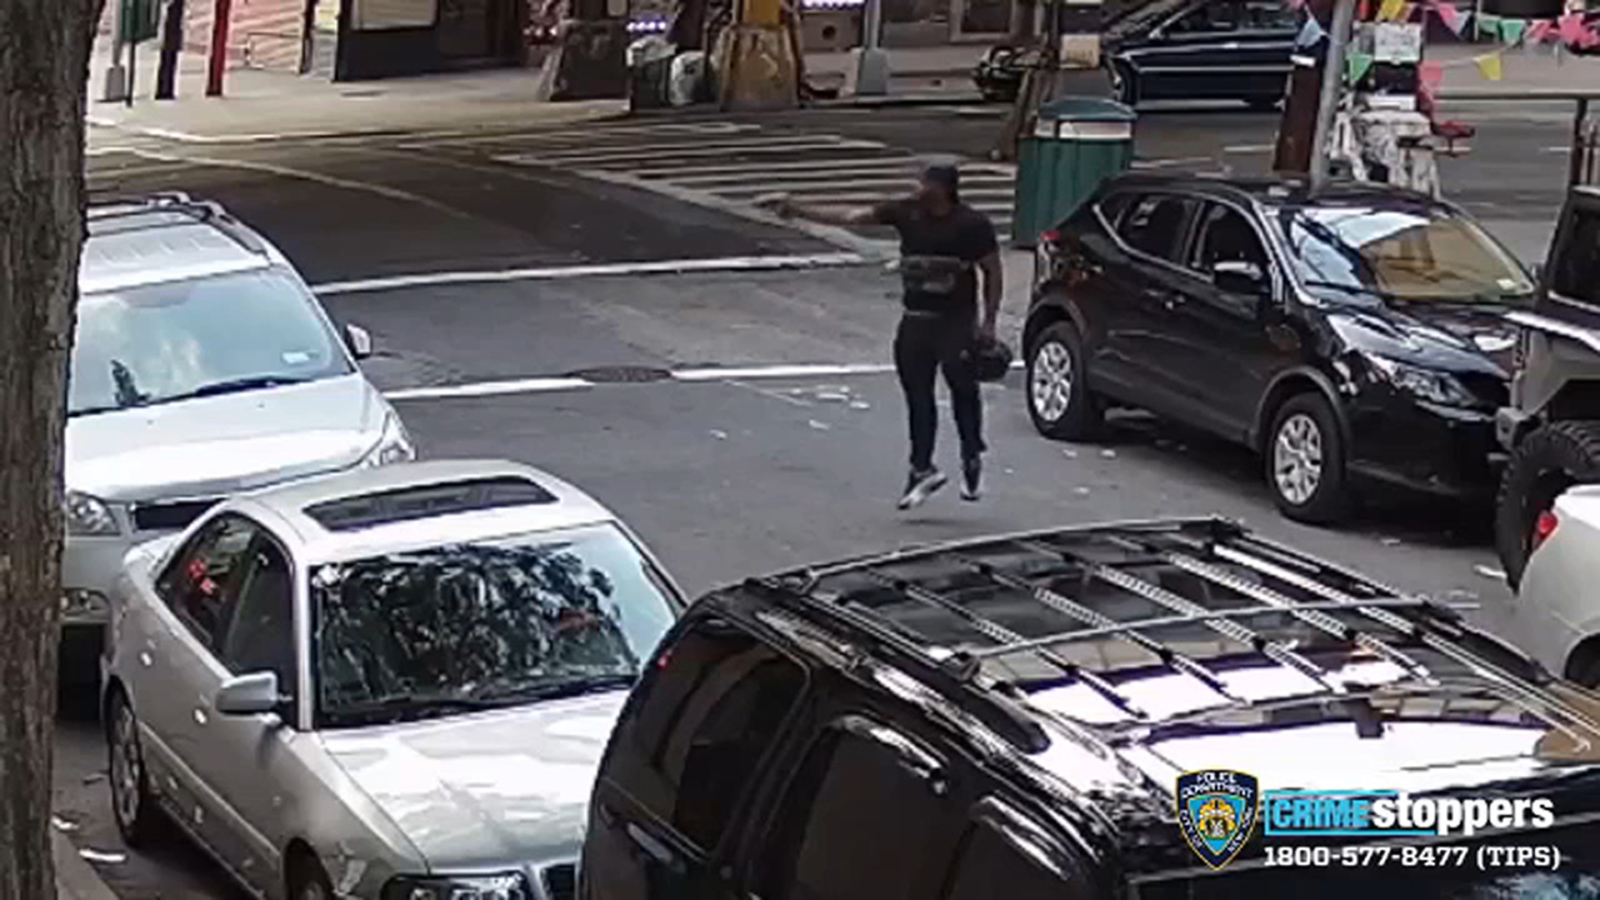 Police looking for 3 men involved in a shootout in the Bronx